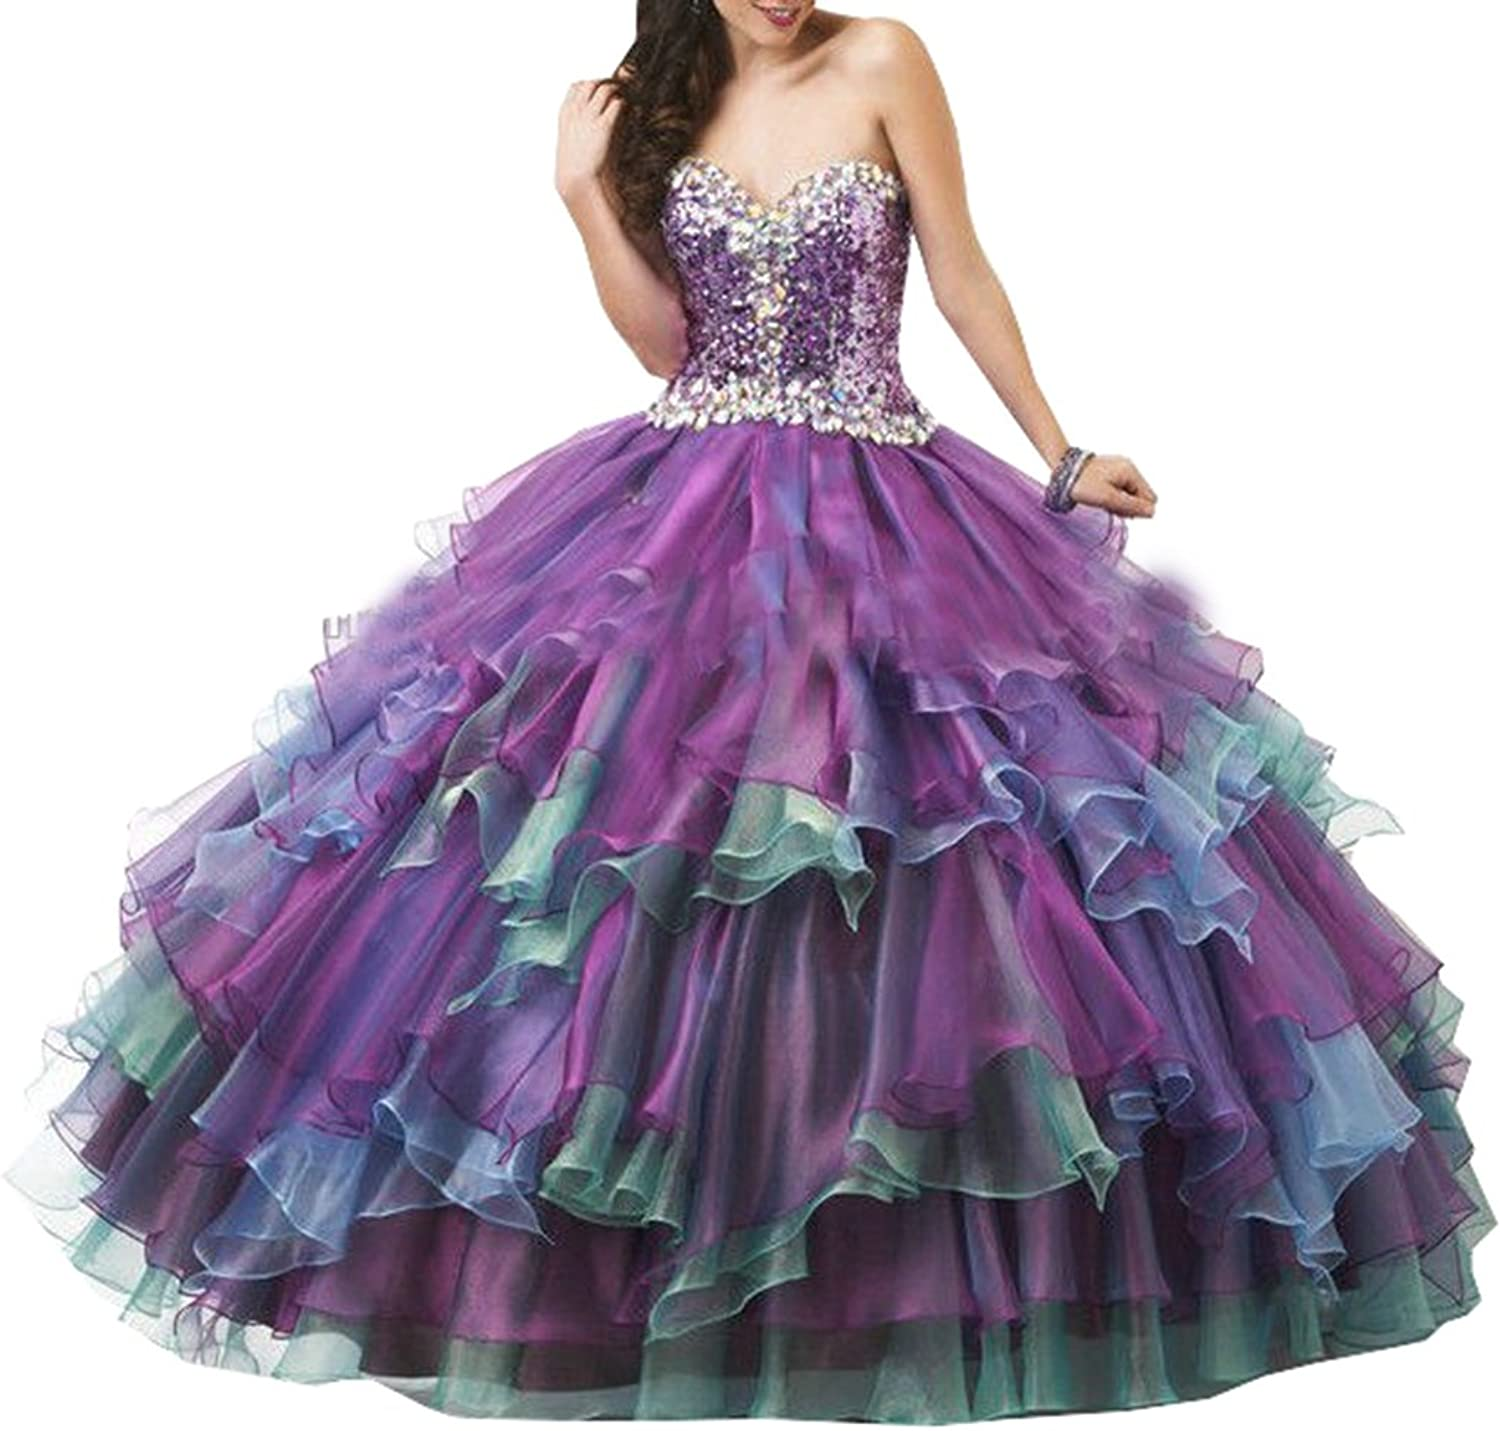 Lavaring Women's Sweetheart Crystal Organza Laceup Backless Ruffle Ball Gown